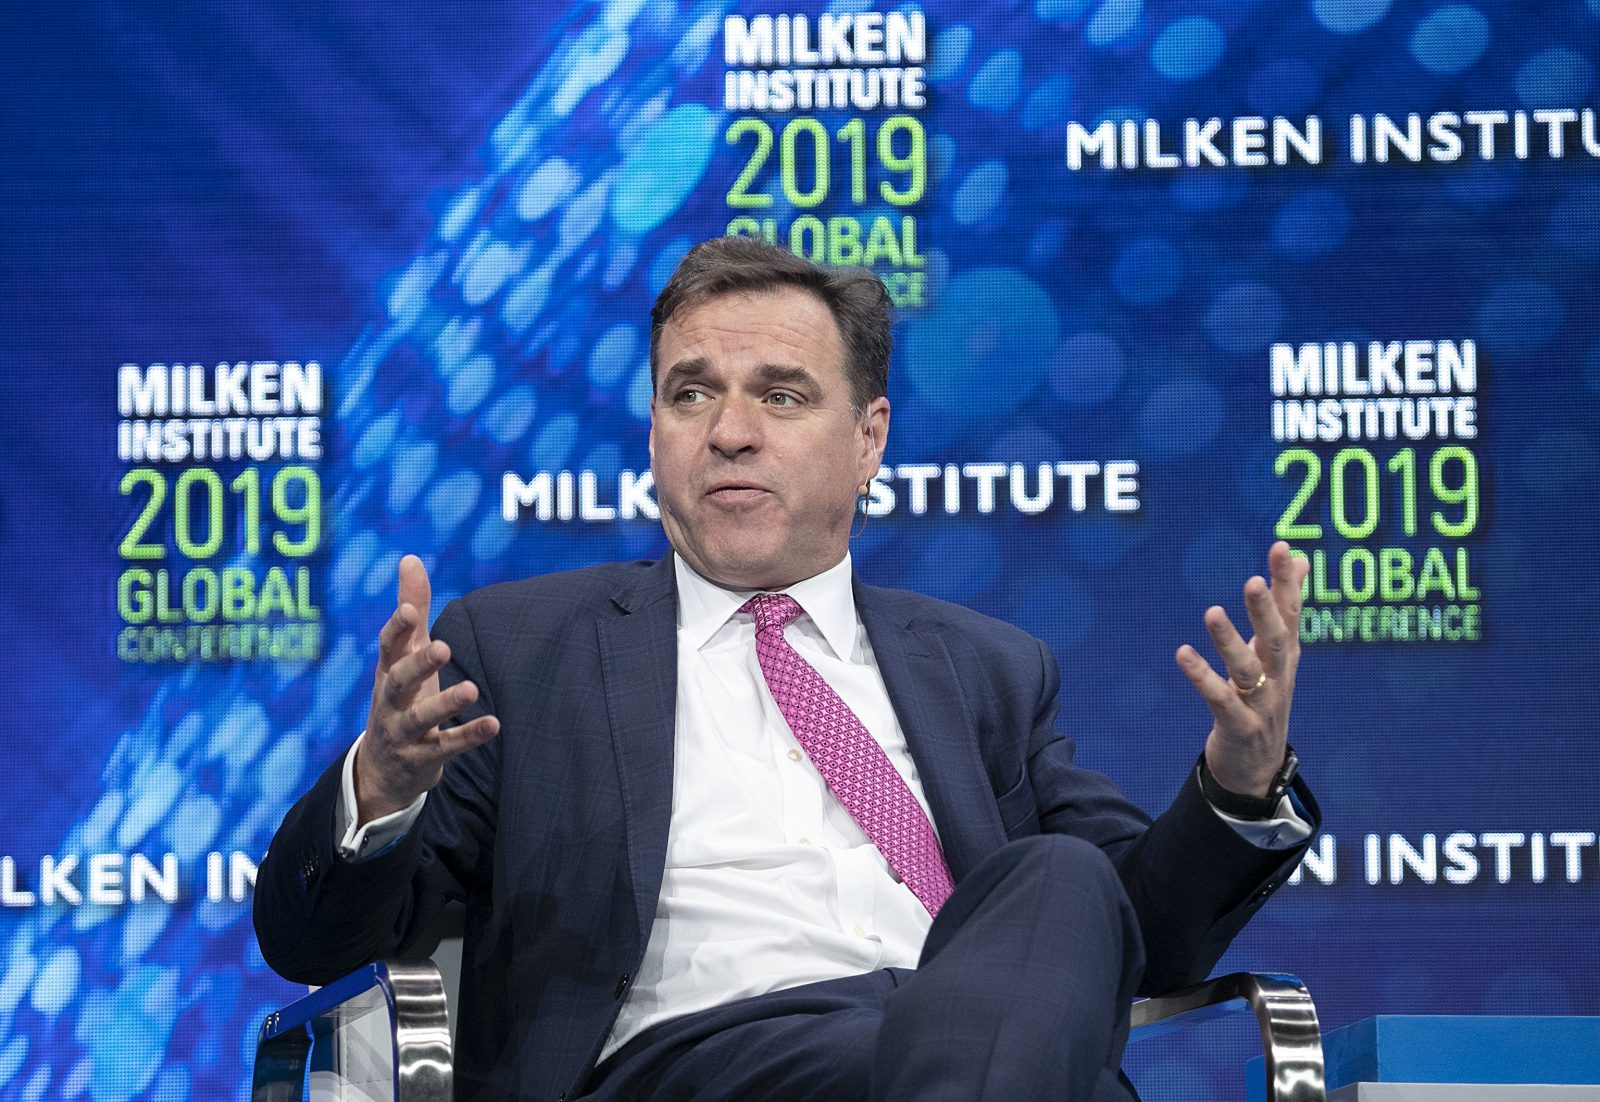 Milken Global Conference 2019